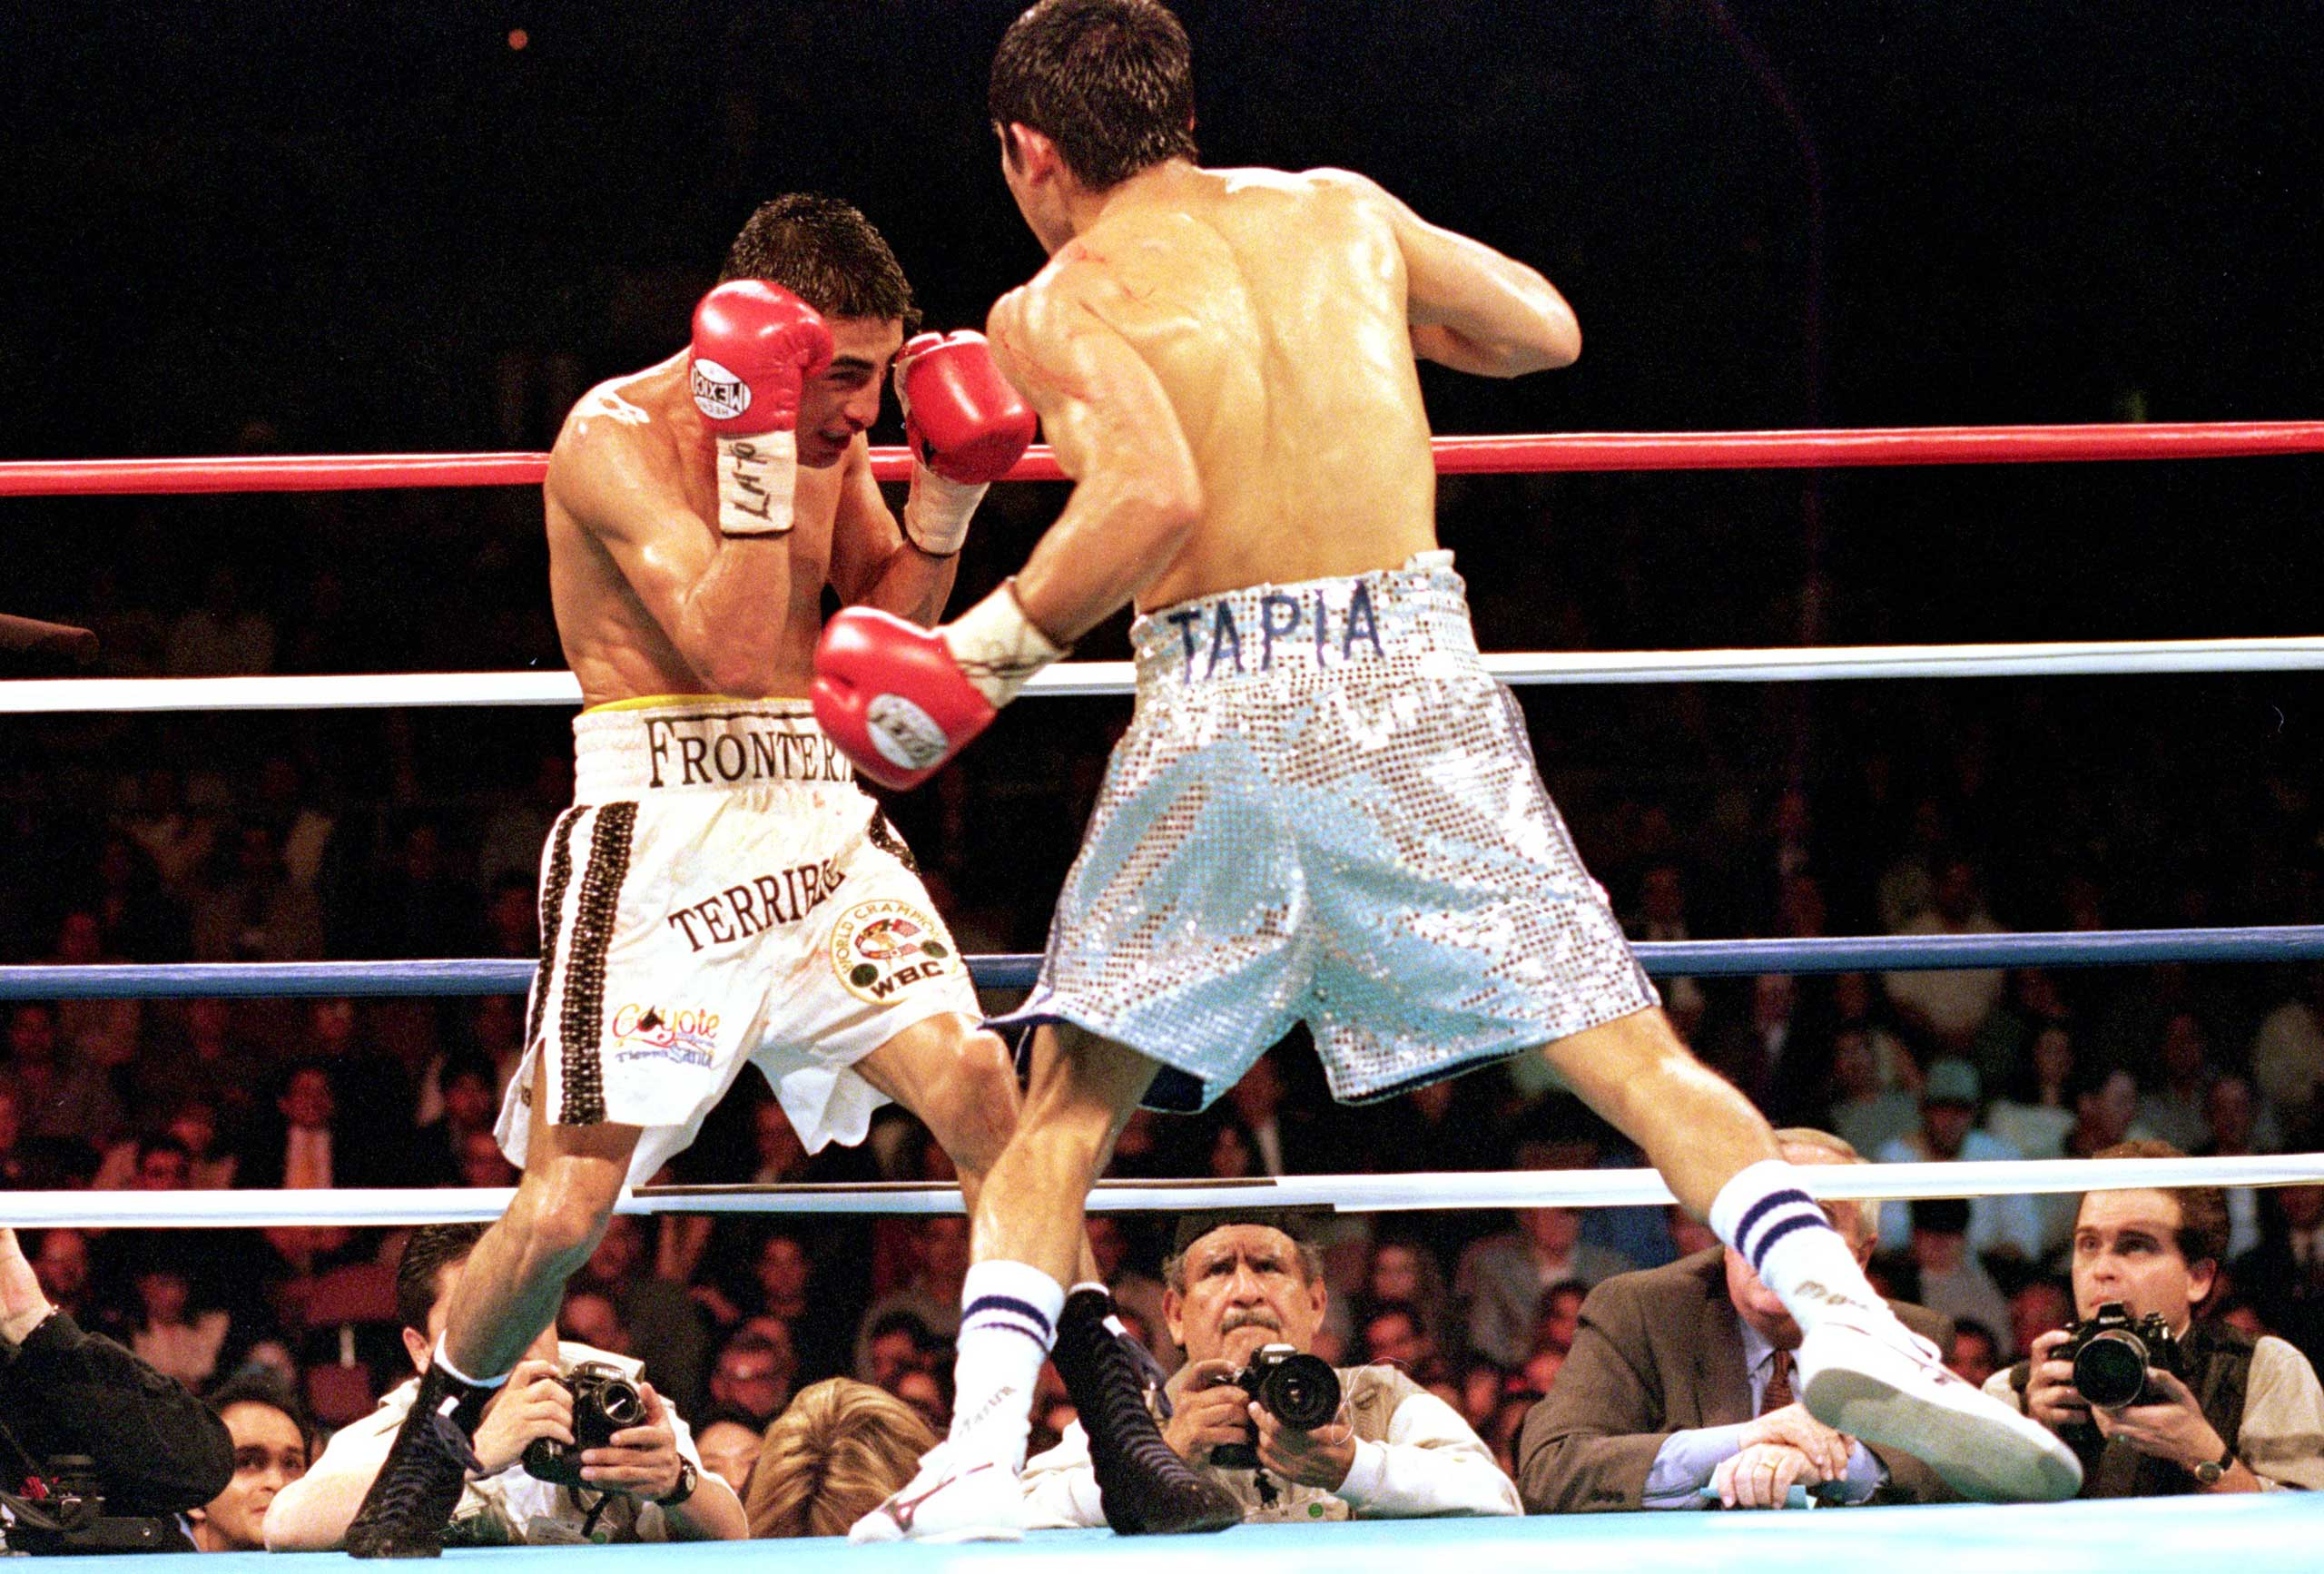 <b>Erik Morales vs. Marco Antonio Barrera I, Feb. 19, 2000</b> Mexicans beam with pride when recalling their countrymen's epic effort back at the turn of the century. Ring Magazine's fight of 2000 was fully justified as the slender boxers belied their small stature to deliver a heavyweight performance which didn't relent (the fifth round has to be seen to be believed) and resulted in Morales winning by a split decision. But considering that Barrera had the only knockdown of the fight, many complained at the outcome which — quelle surprise — led to a rematch (won by Barrera via a unanimous outcome). Cue the third fight (this time at Super Featherweight) where Barrera was declared the winner by a majority decision.